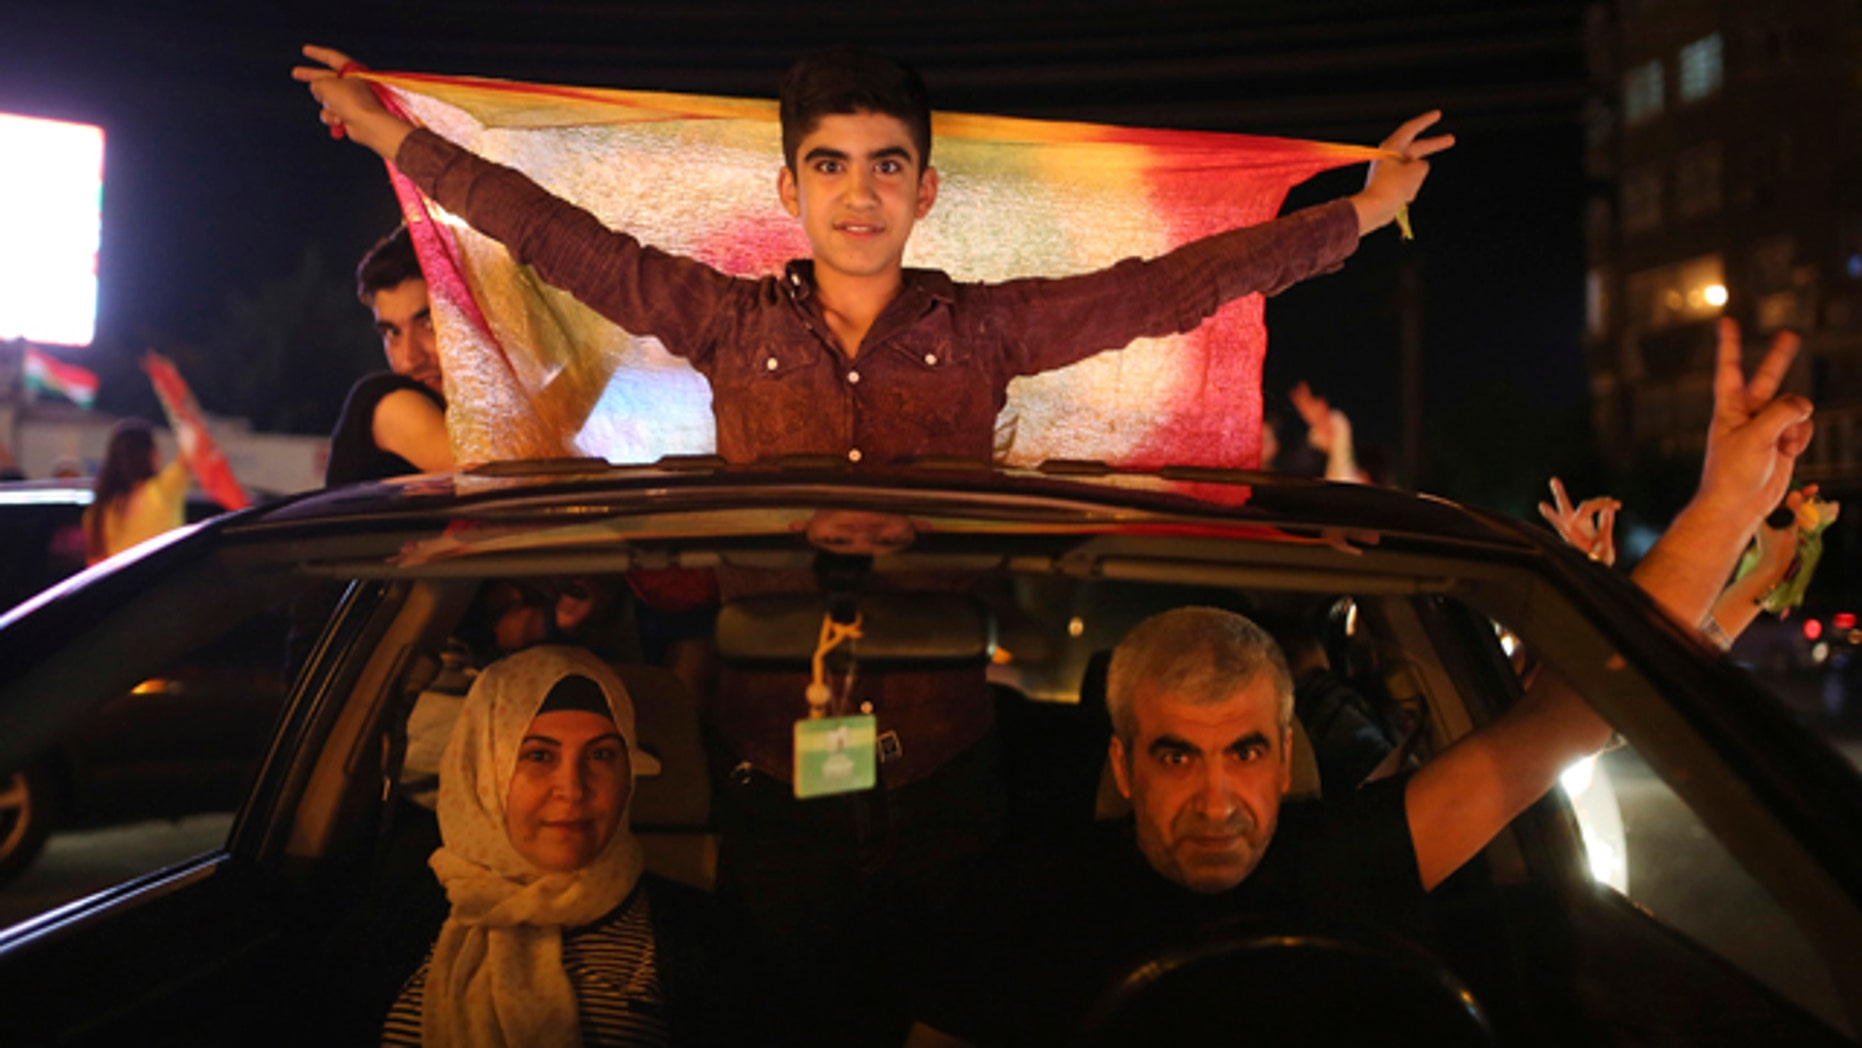 June 7, 2015: Supporters of the pro-Kurdish Peoples' Democratic Party (HDP) celebrate in Diyarbakir, southeastern Turkey. In a stunning rebuke of President Recep Tayyip Erdogan's ambitions to expand his powers, Turkish voters stripped his party of its simple majority in parliament, preliminary election results showed Sunday. (AP Photo/Emrah Tazegul)